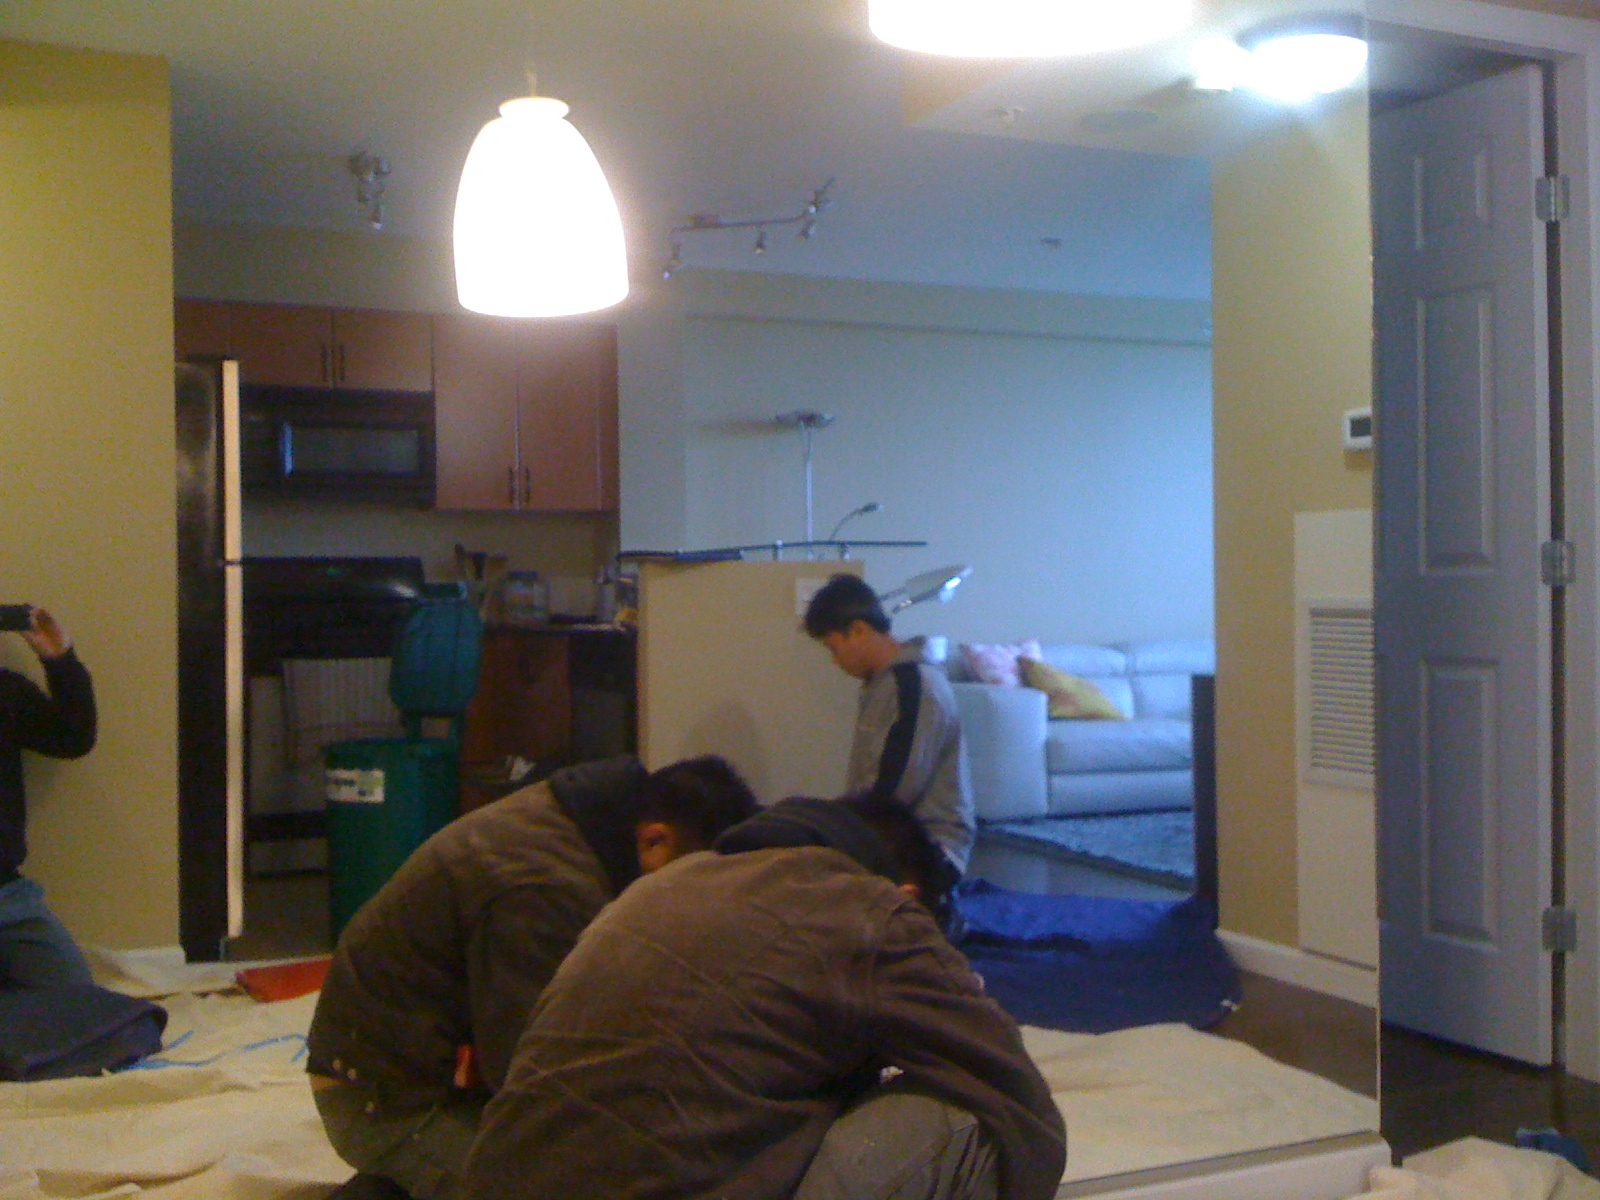 Mirrors repair replace and install in vancouver bc amipublicfo Choice Image